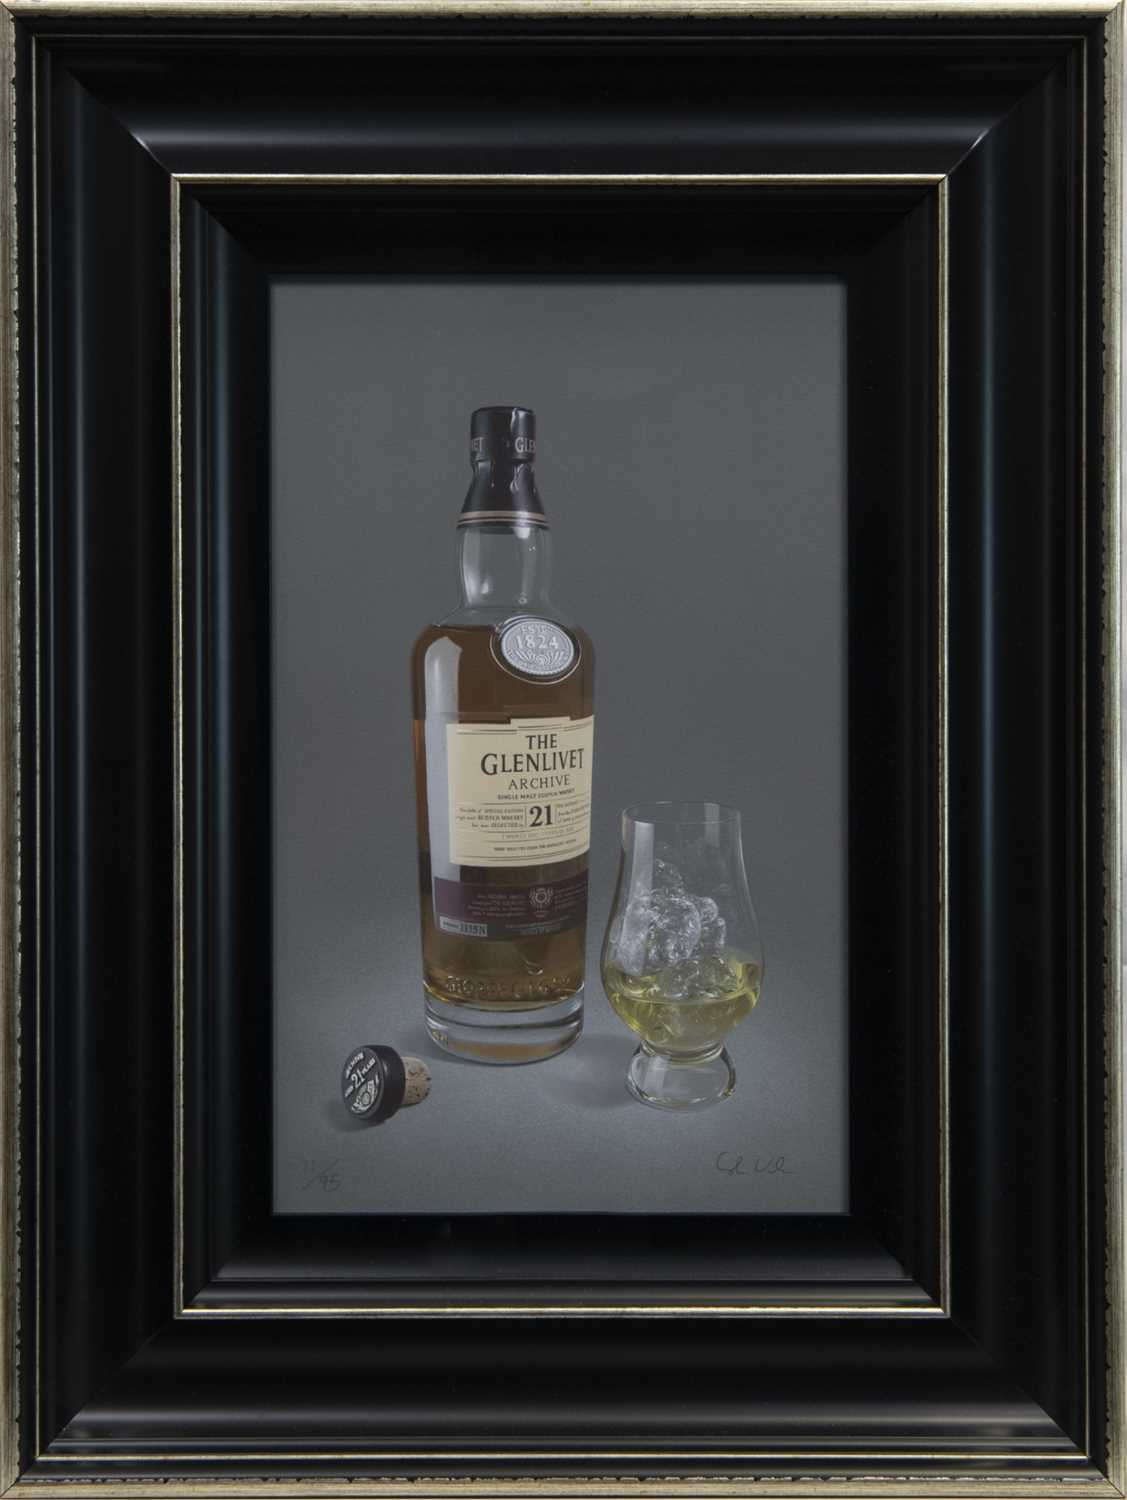 Lot 98 - 21 YEAR GLENLIVET, A GICLEE PRINT BY COLIN WILSON